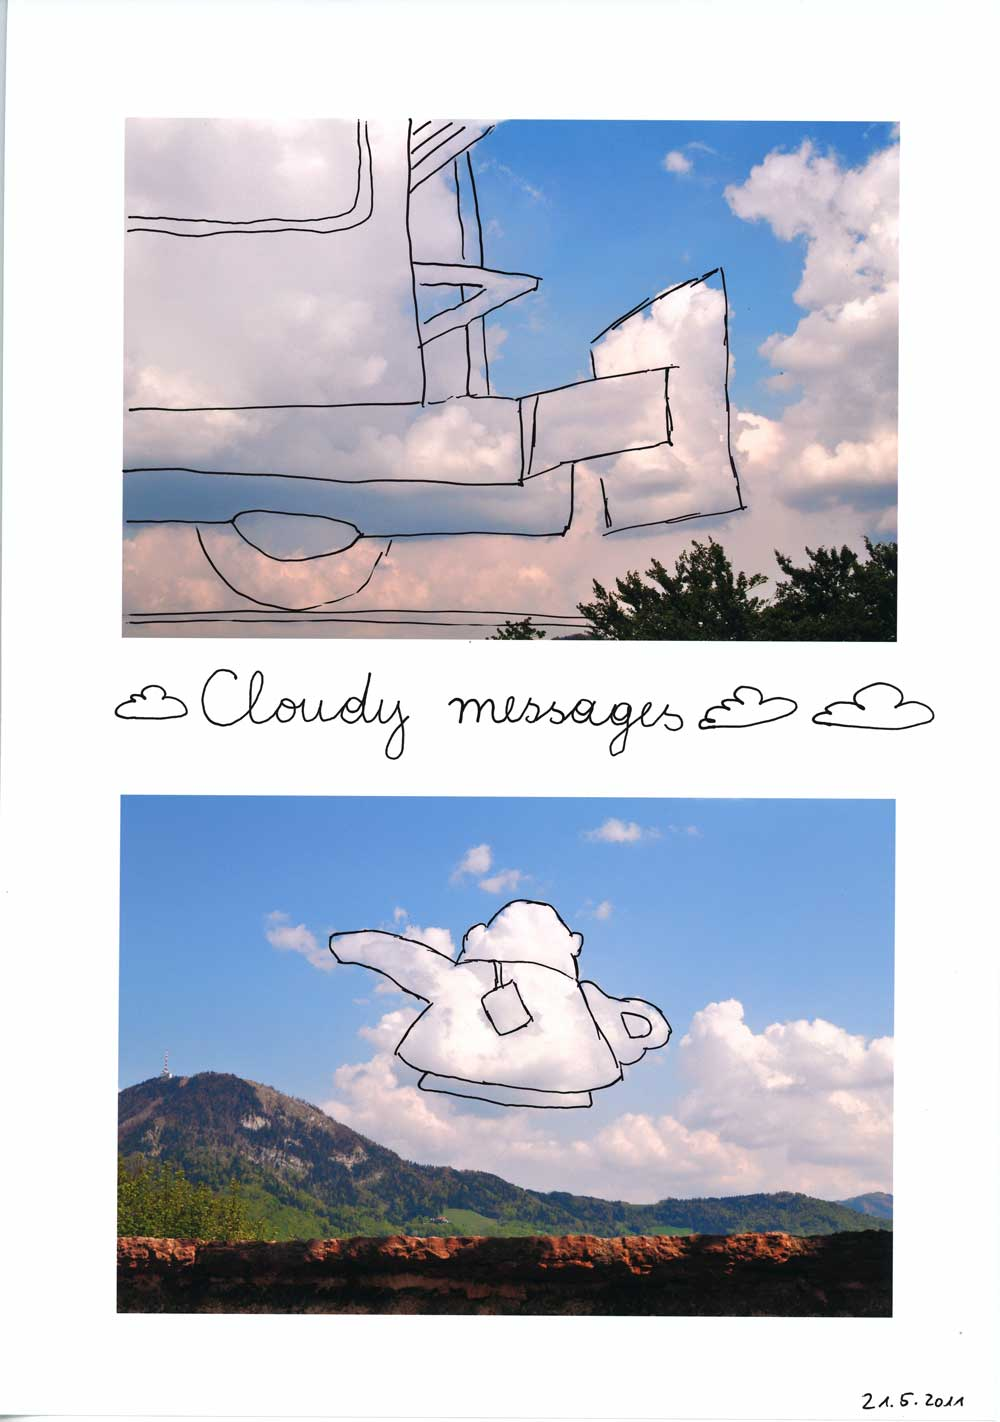 Be Creative #141 - Cloudy messages, © Ines Häufler, 2011